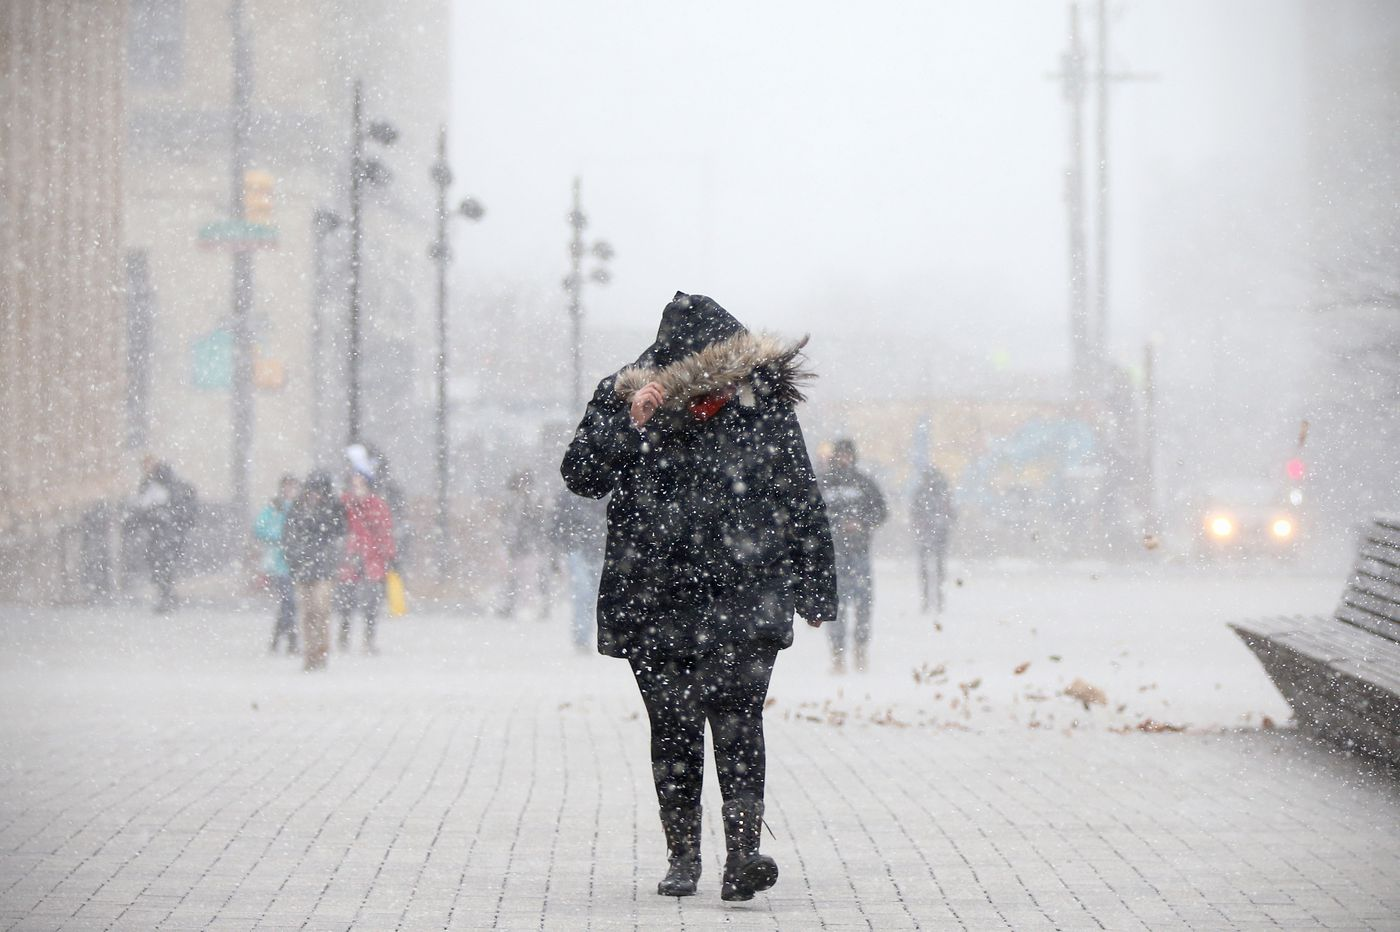 How to not get frostbite, hypothermia when the weather is freezing